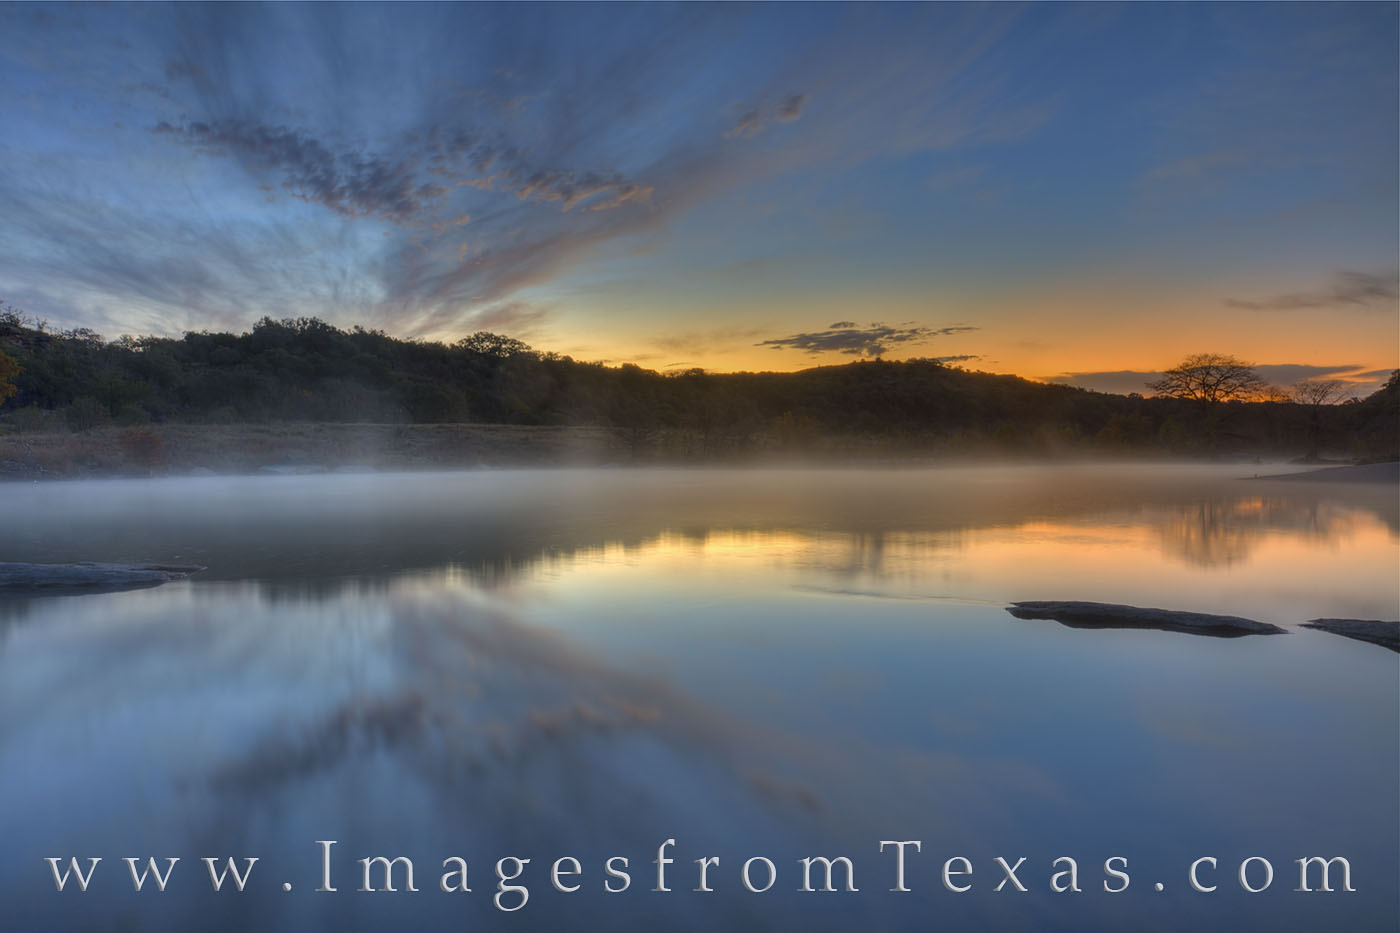 Well before sunrise, the sky turns blue and orange as the first glow from the sun's light brings light to the Pedernales River...